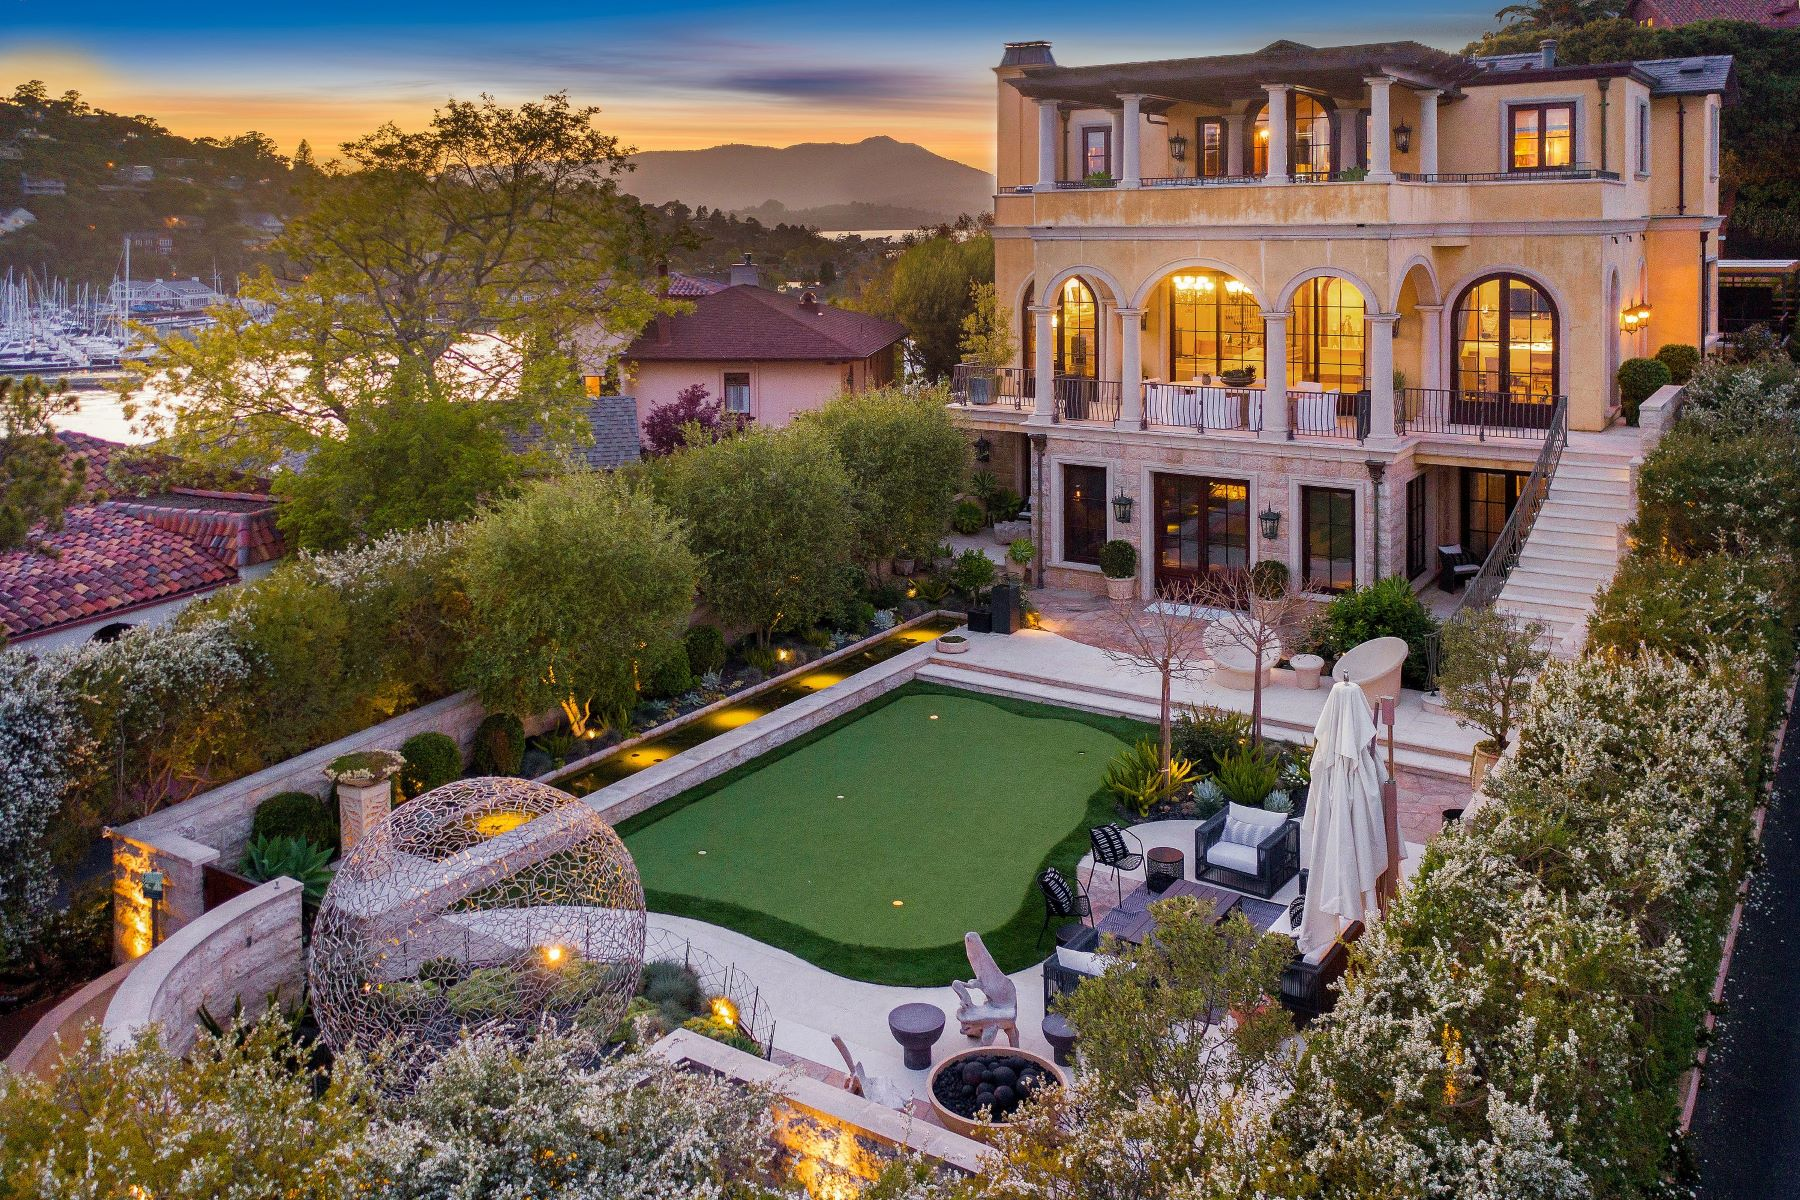 Single Family Homes for Sale at Corinthian Island's Icon 74 Bellevue Avenue Belvedere, California 94920 United States